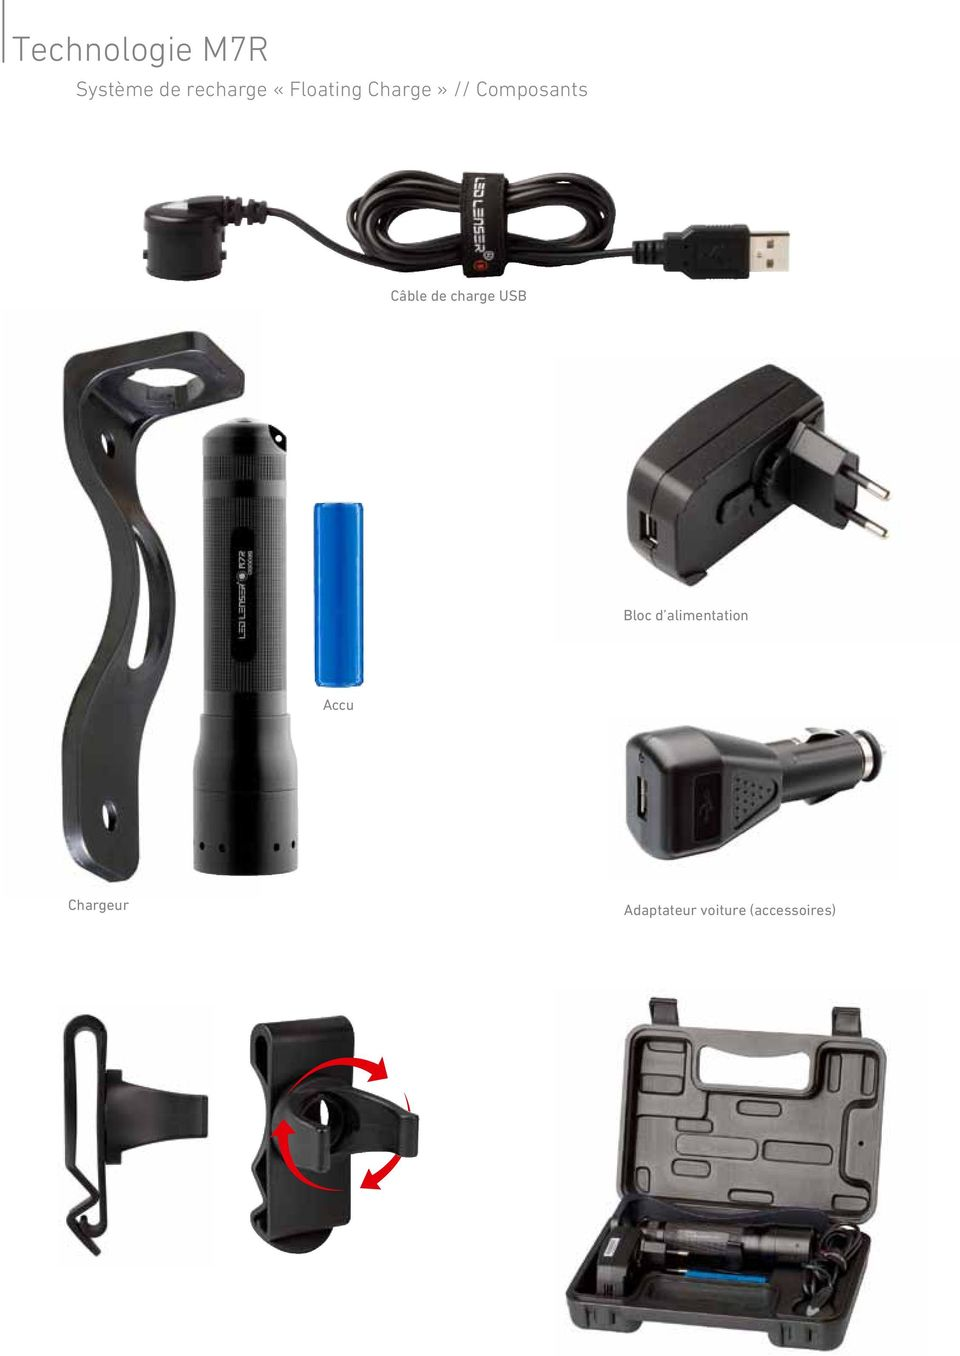 de charge USB Bloc d alimentation Accu